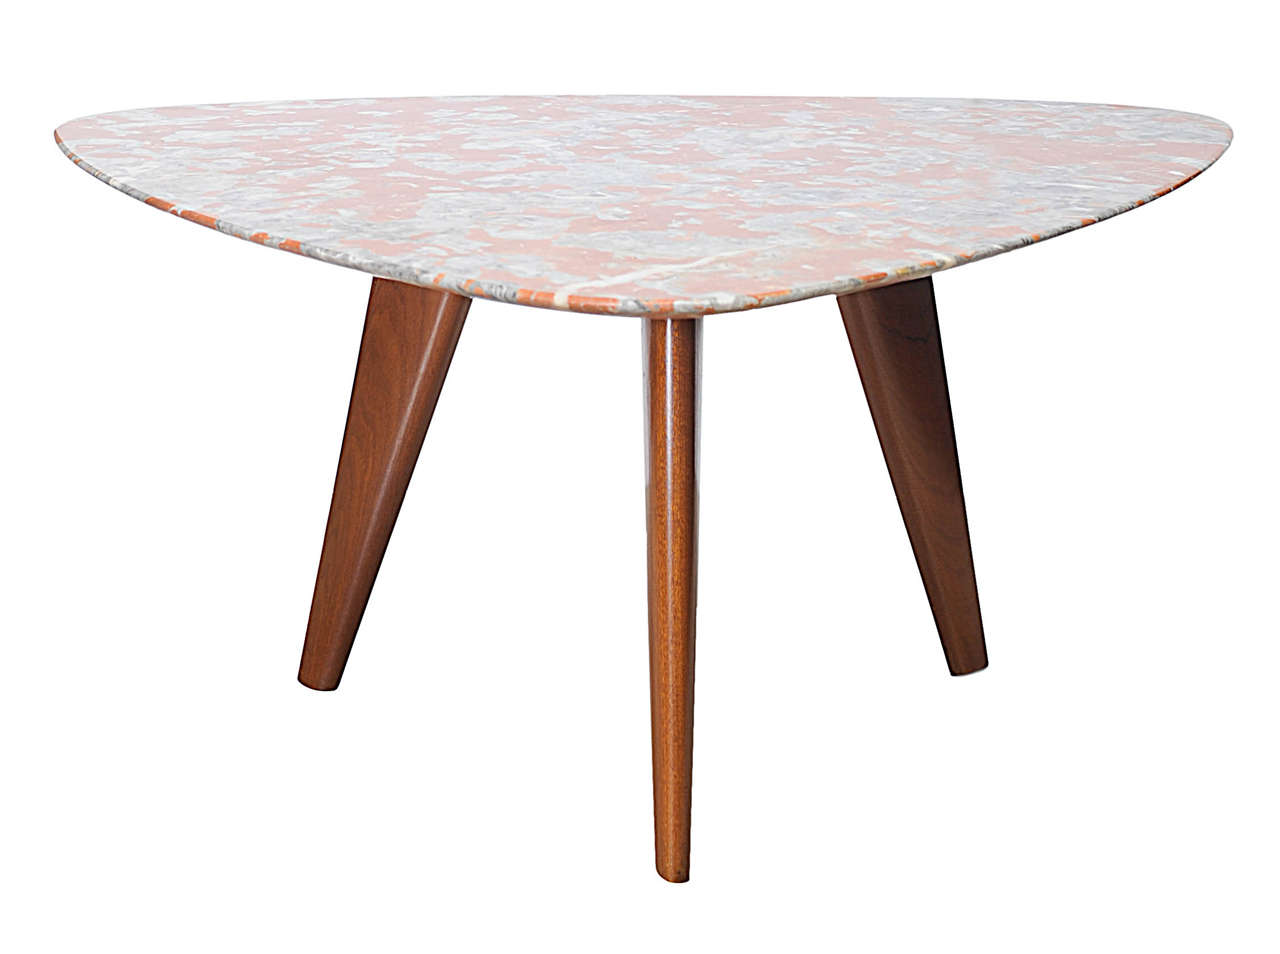 Low table with triangular shape marble top.